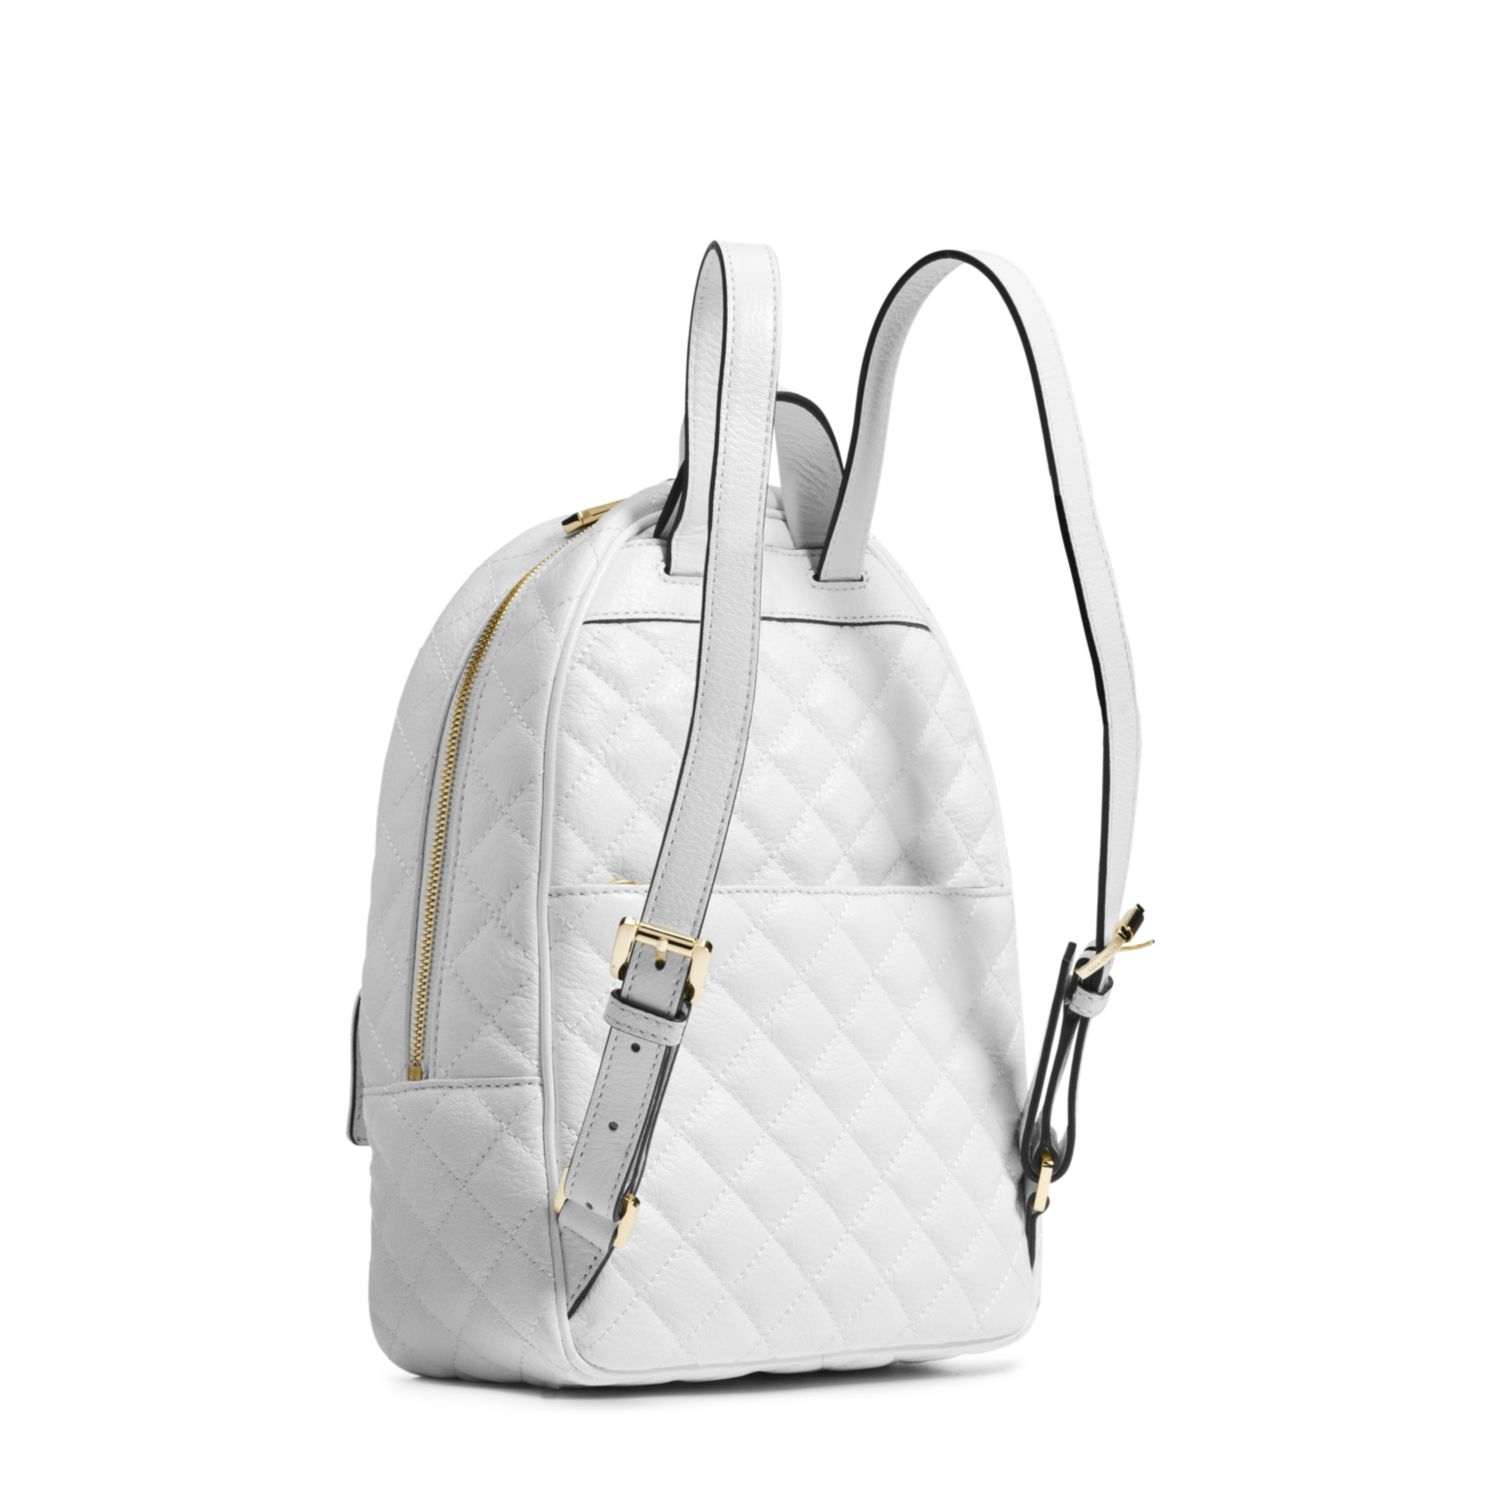 8950b35d9ab7 ... inexpensive lyst michael kors kim studded leather medium backpack in  white 4bf4a d0fe7